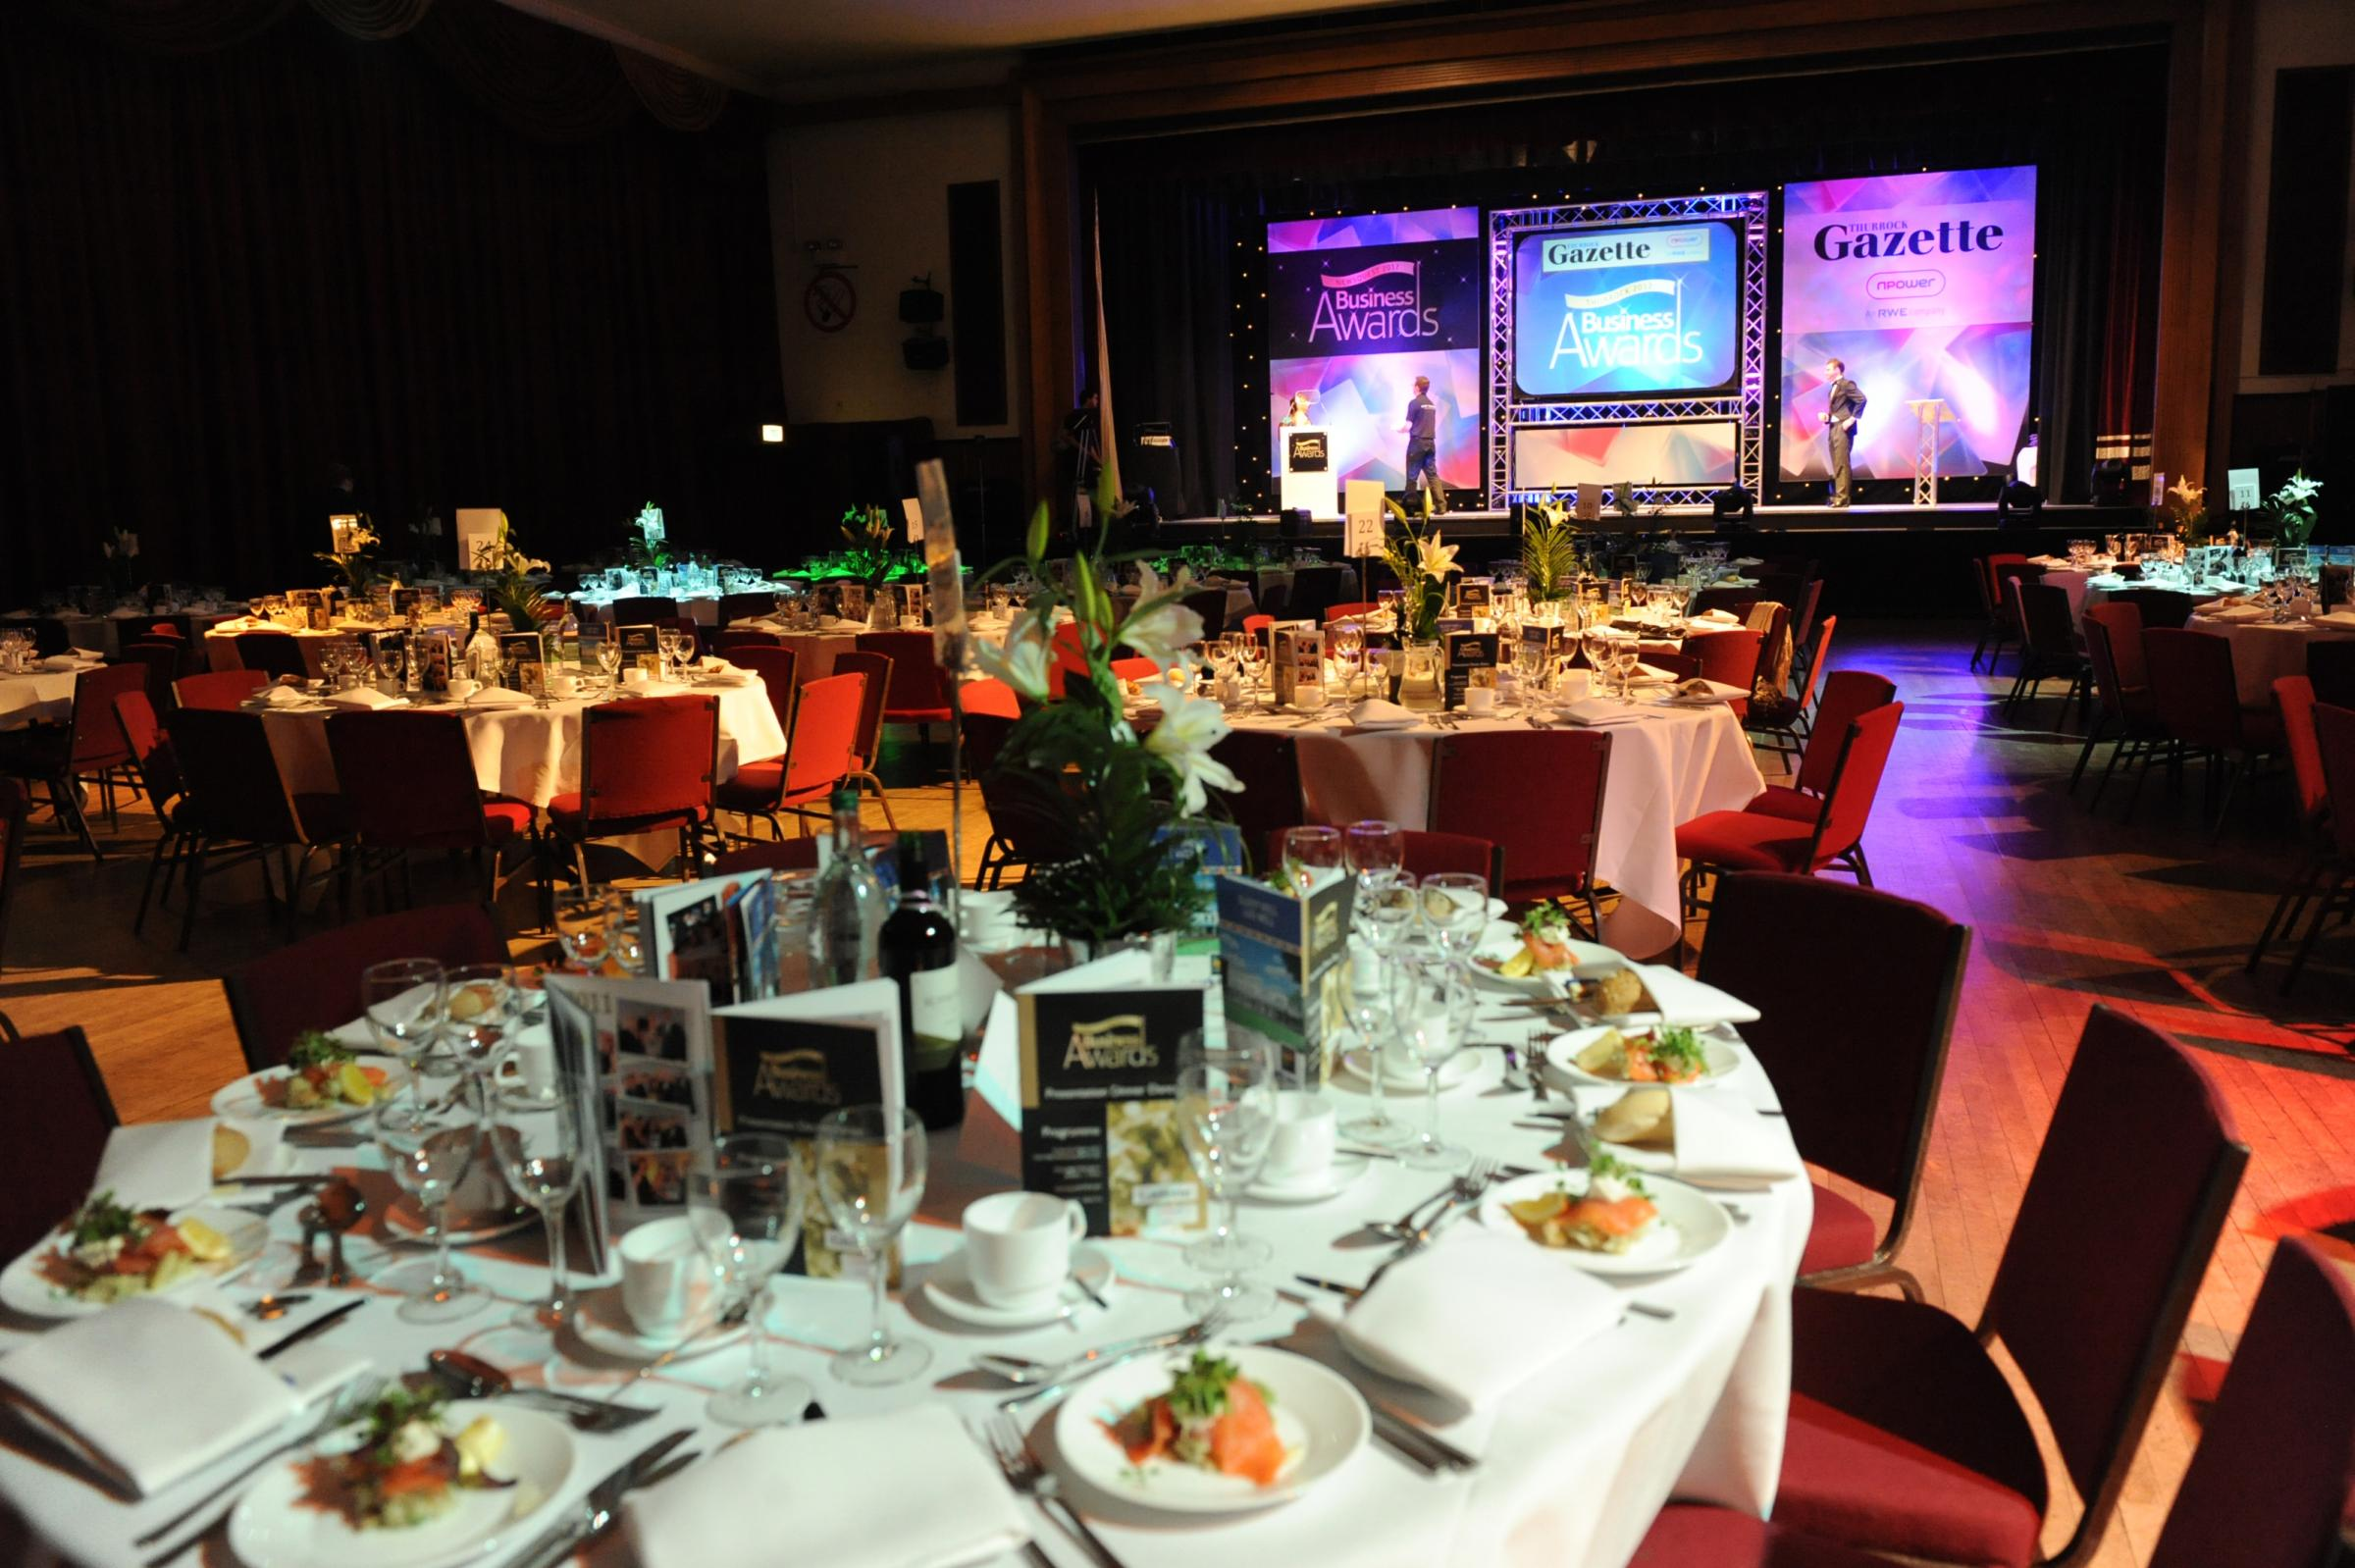 Thurrock Business Awards celebrate the best in business in glittering ceremony at Civic Hall